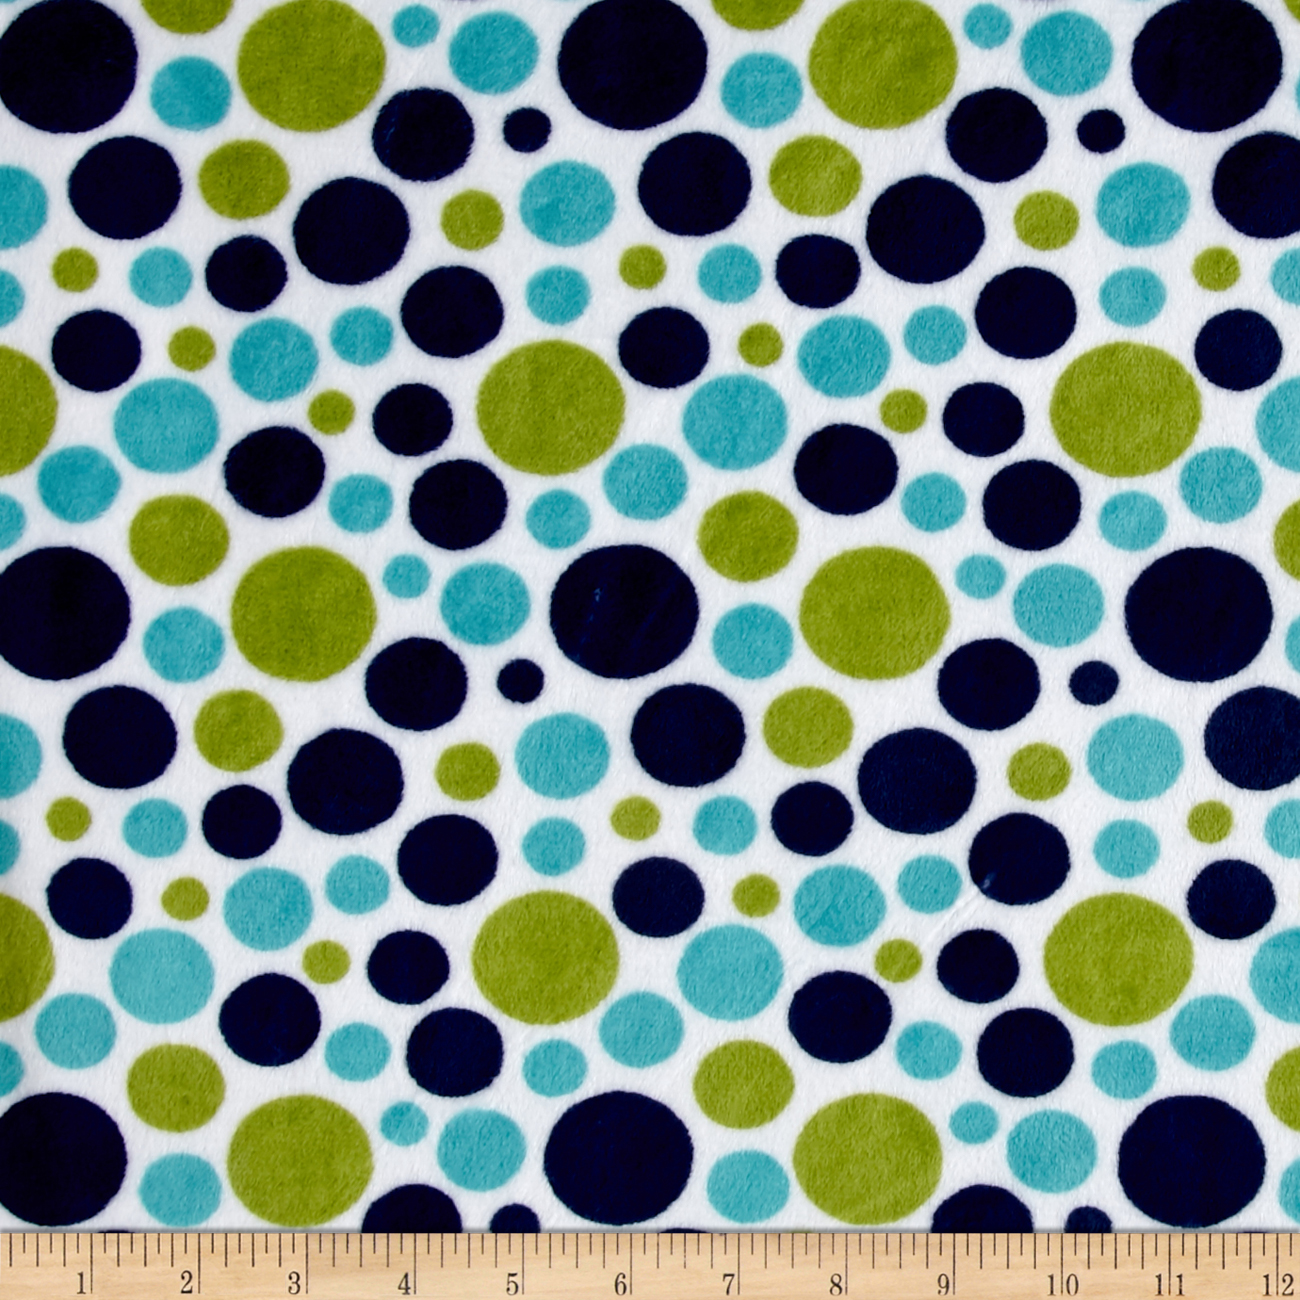 Shannon Minky Classic Bubble Dot Cuddle Midnight/Kiwi Fabric by Shannon in USA